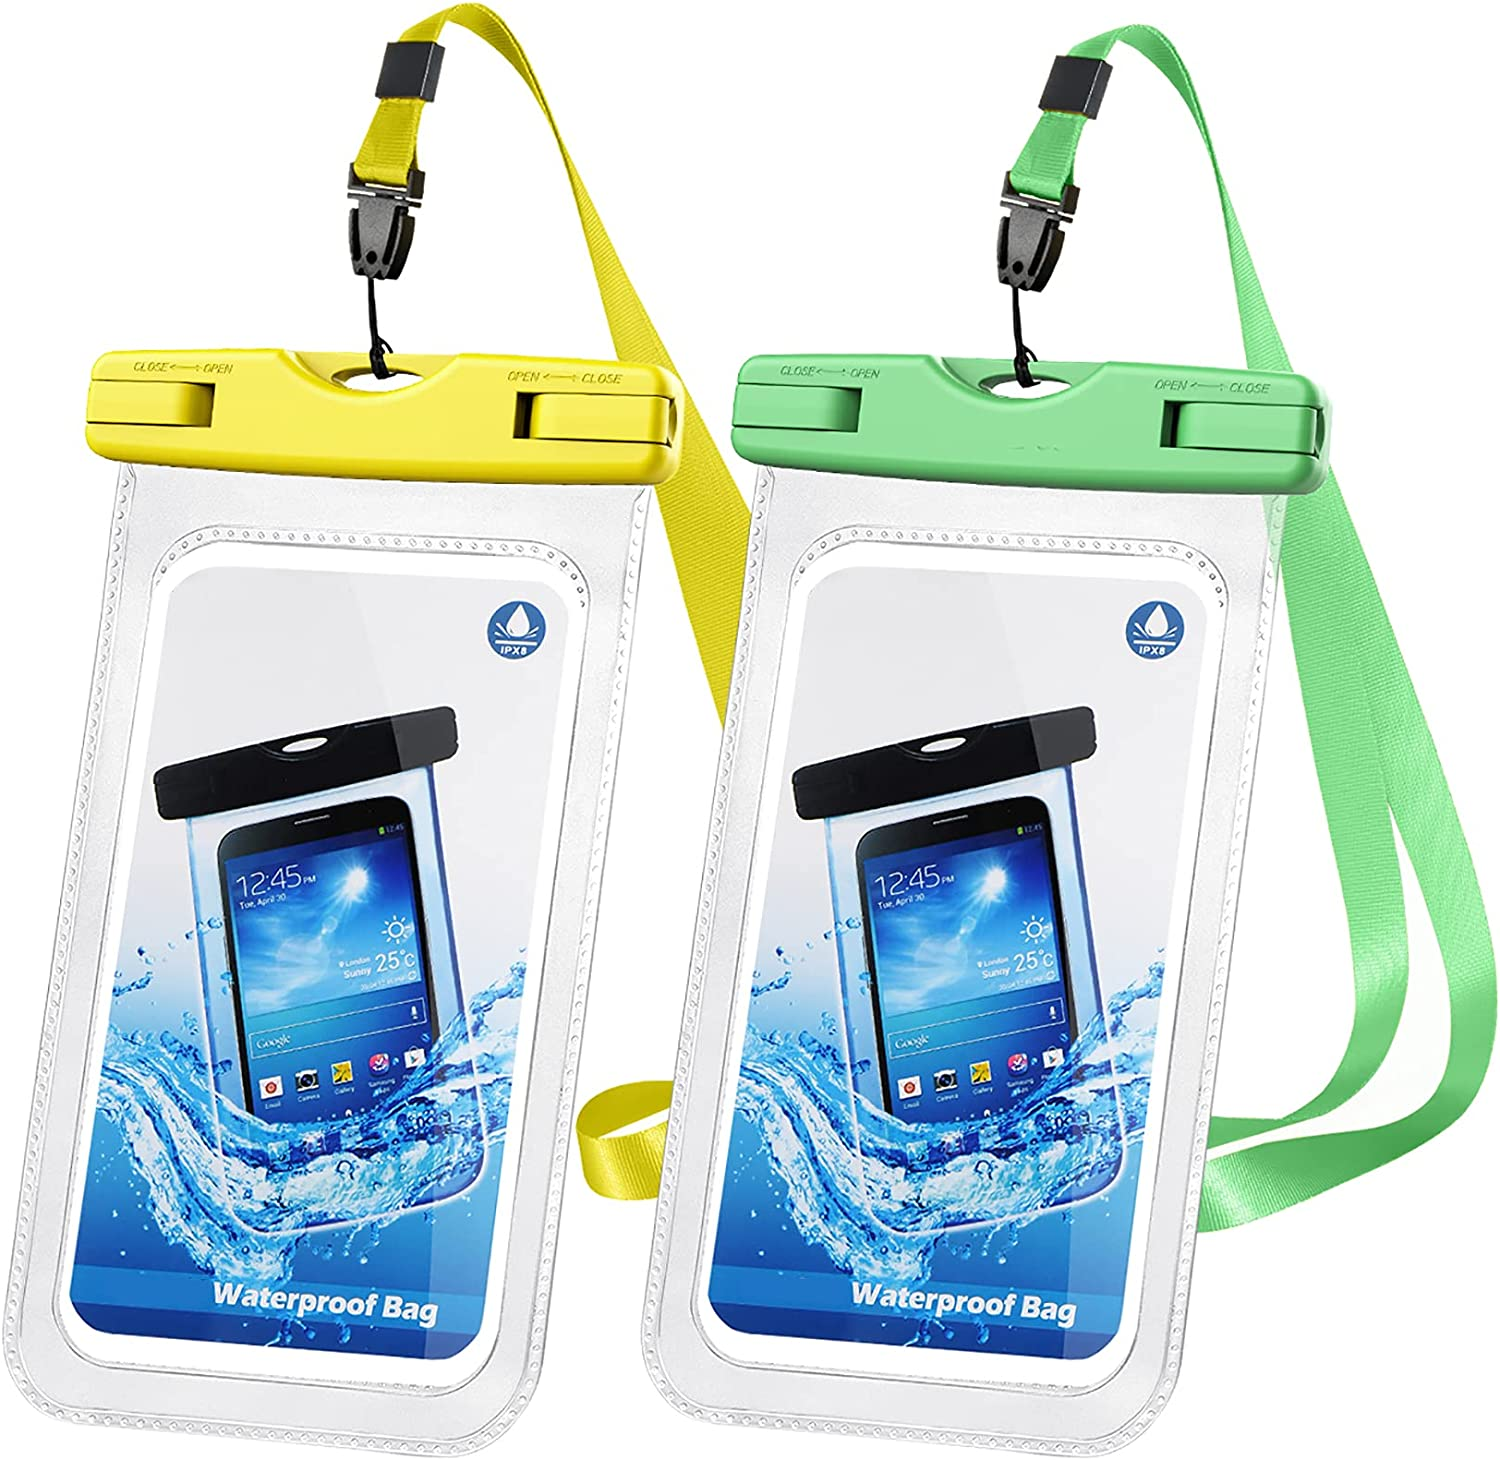 Waterproof Phone Pouch, IPX8 Waterproof Case Dry Bag Waterproof Phone Case, Compatible with 12 Pro Max SE 11 Pro Max XS XR X 8 7 Galaxy Google up to 7.0